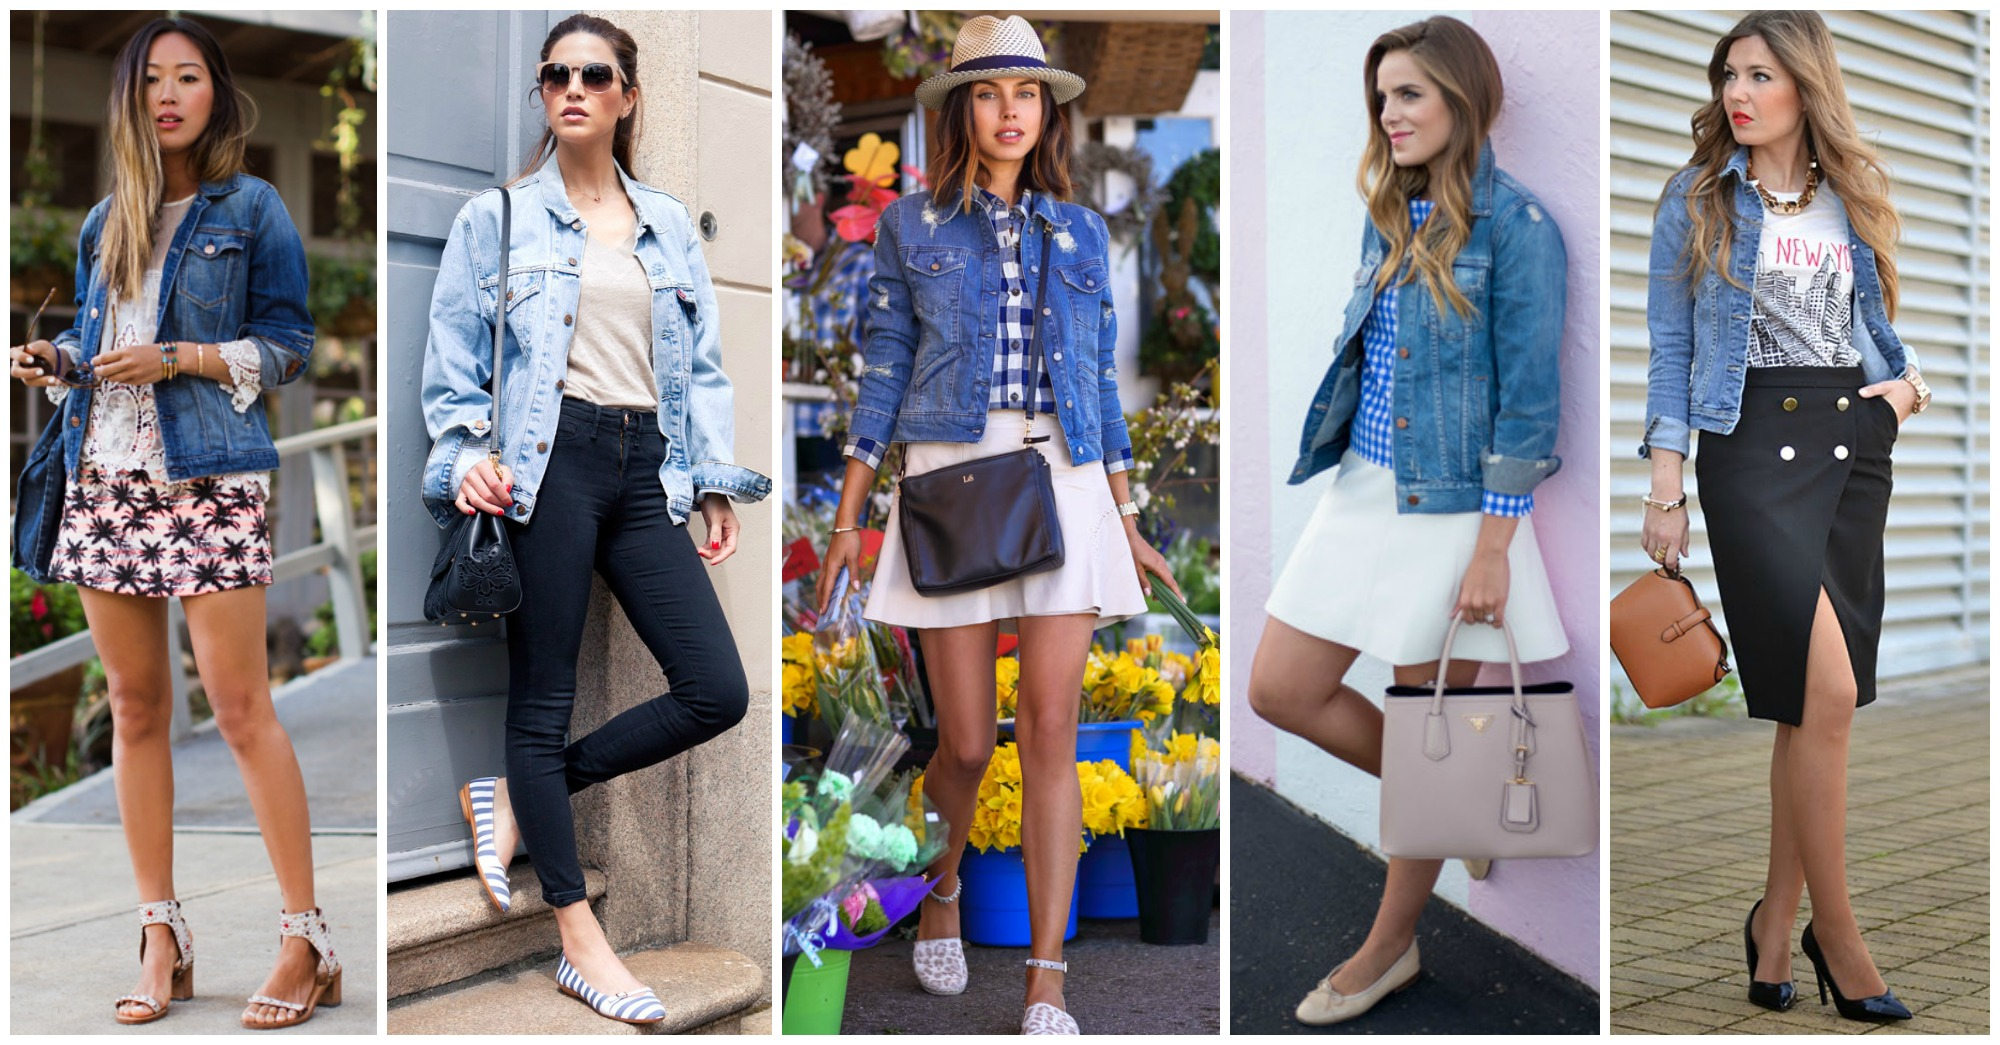 15 Fashionable Ways to Style Your Denim Jacket